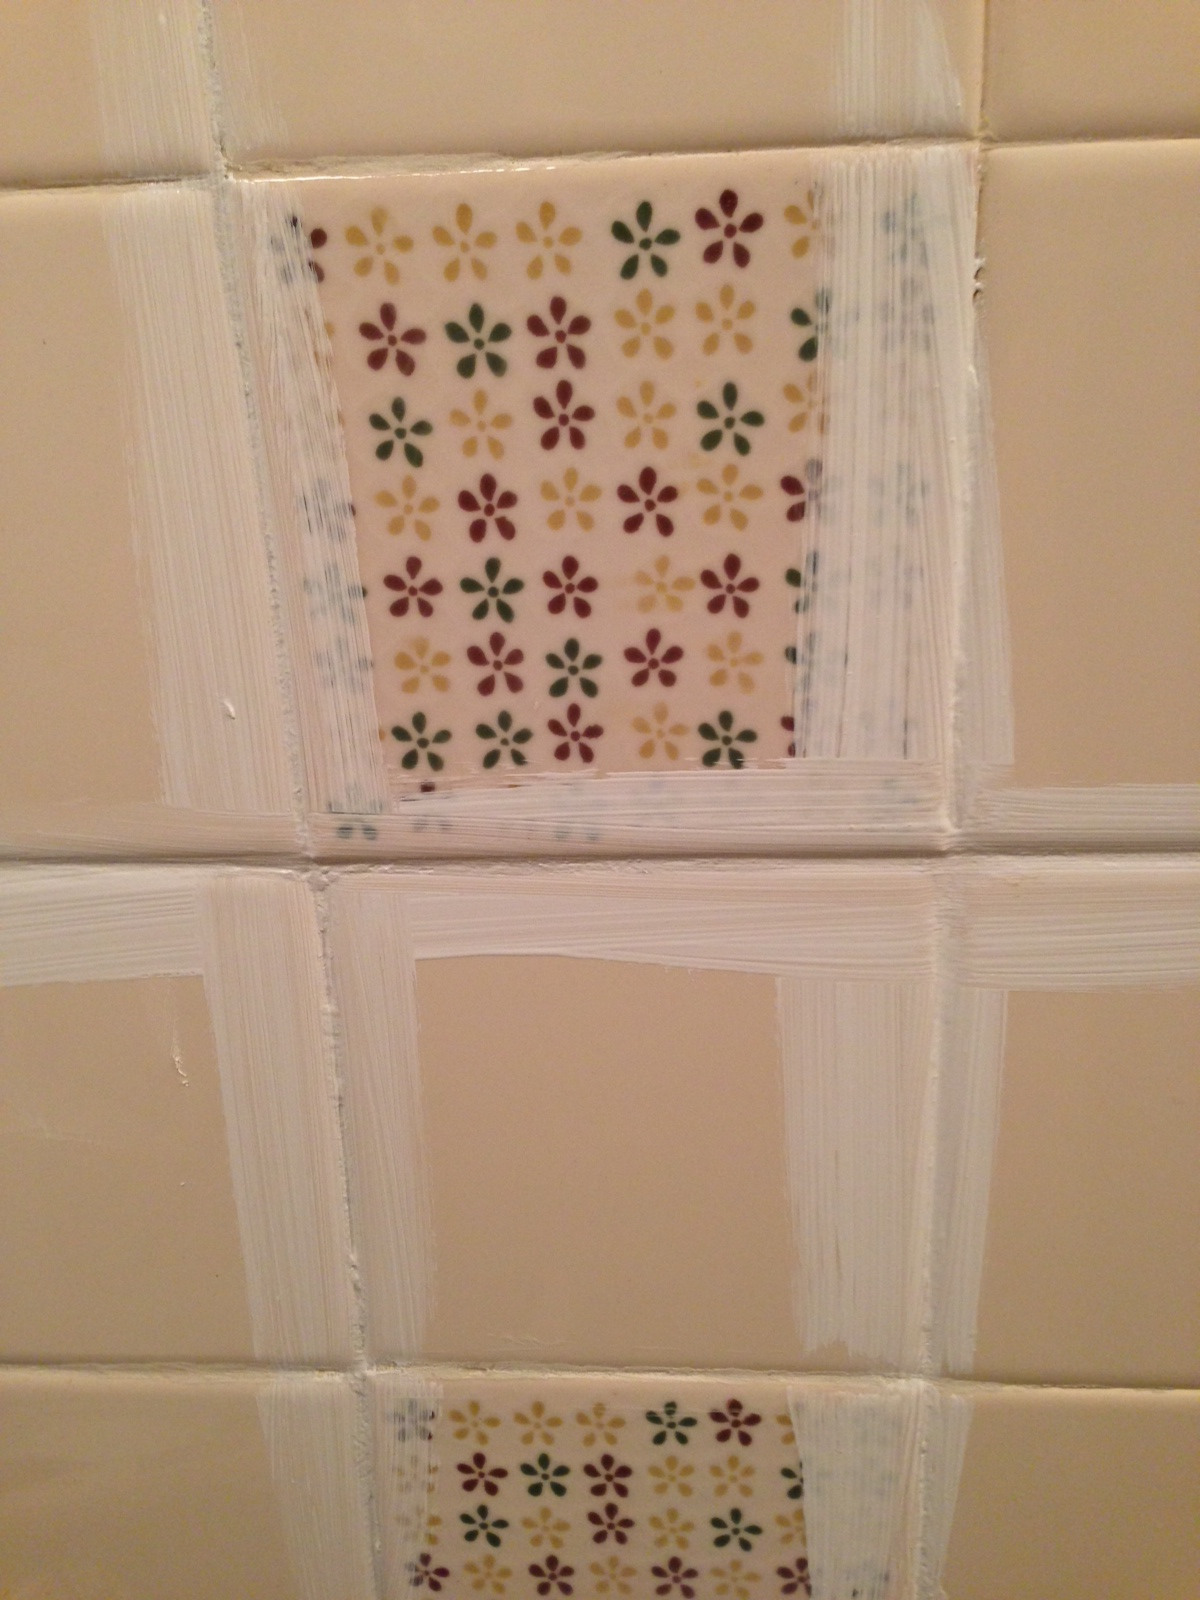 Remodelaholic | A $170 Bathroom Makeover with Painted Tile